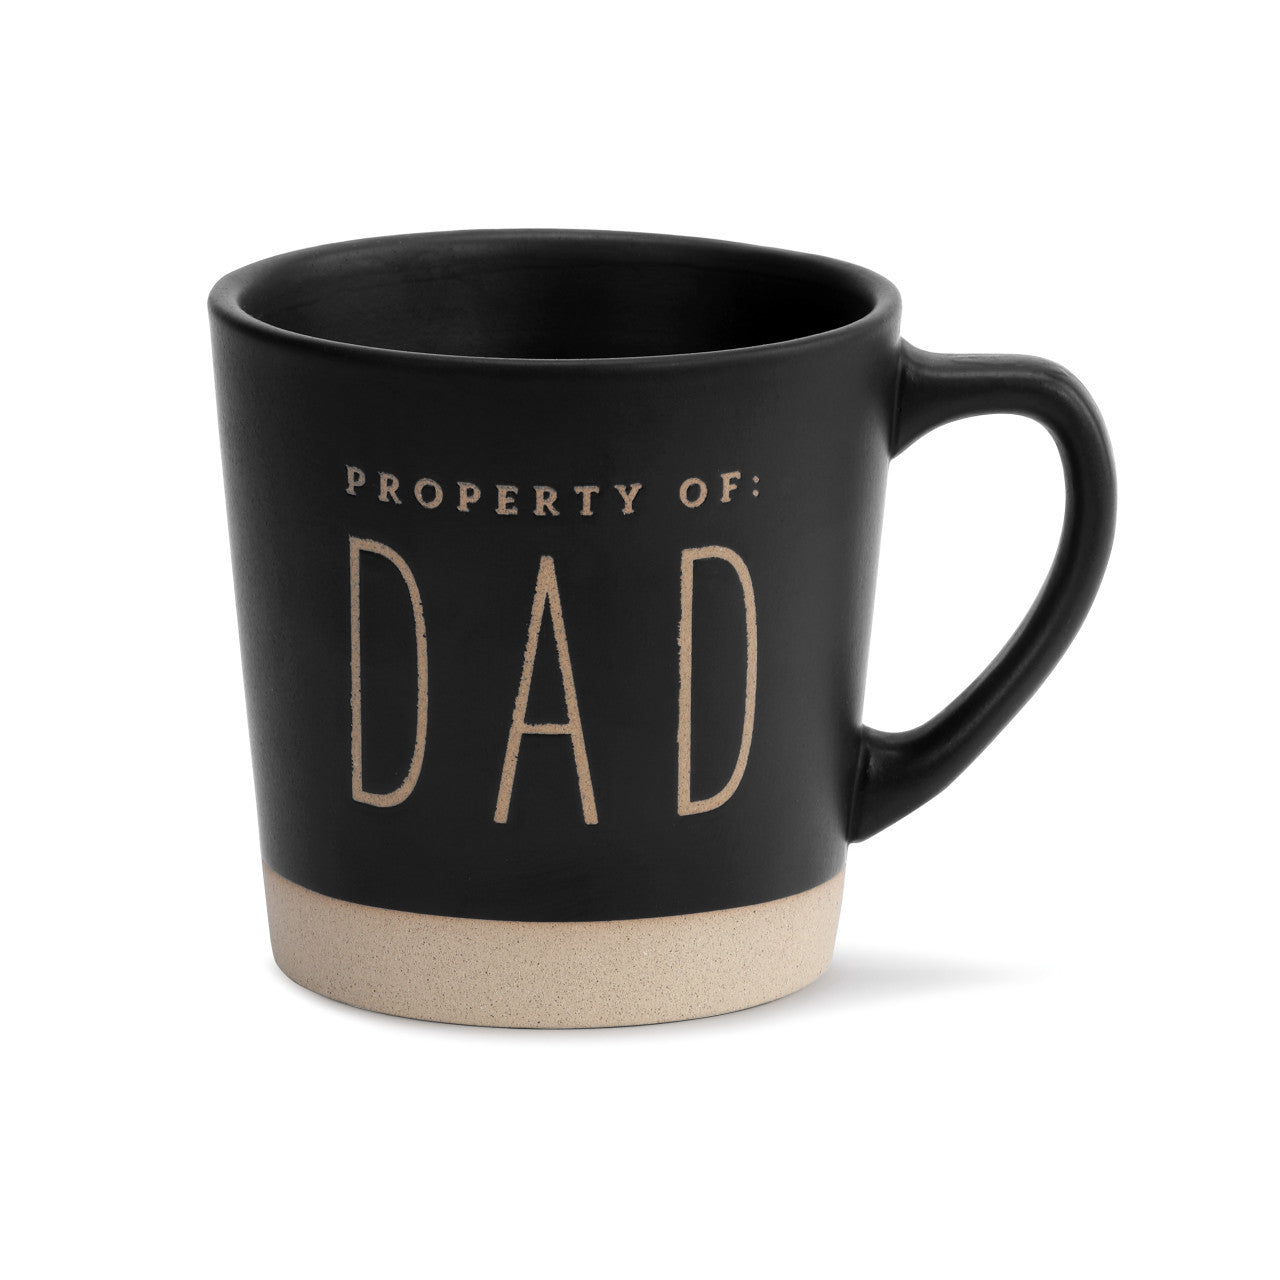 Property of Dad Mug!!!